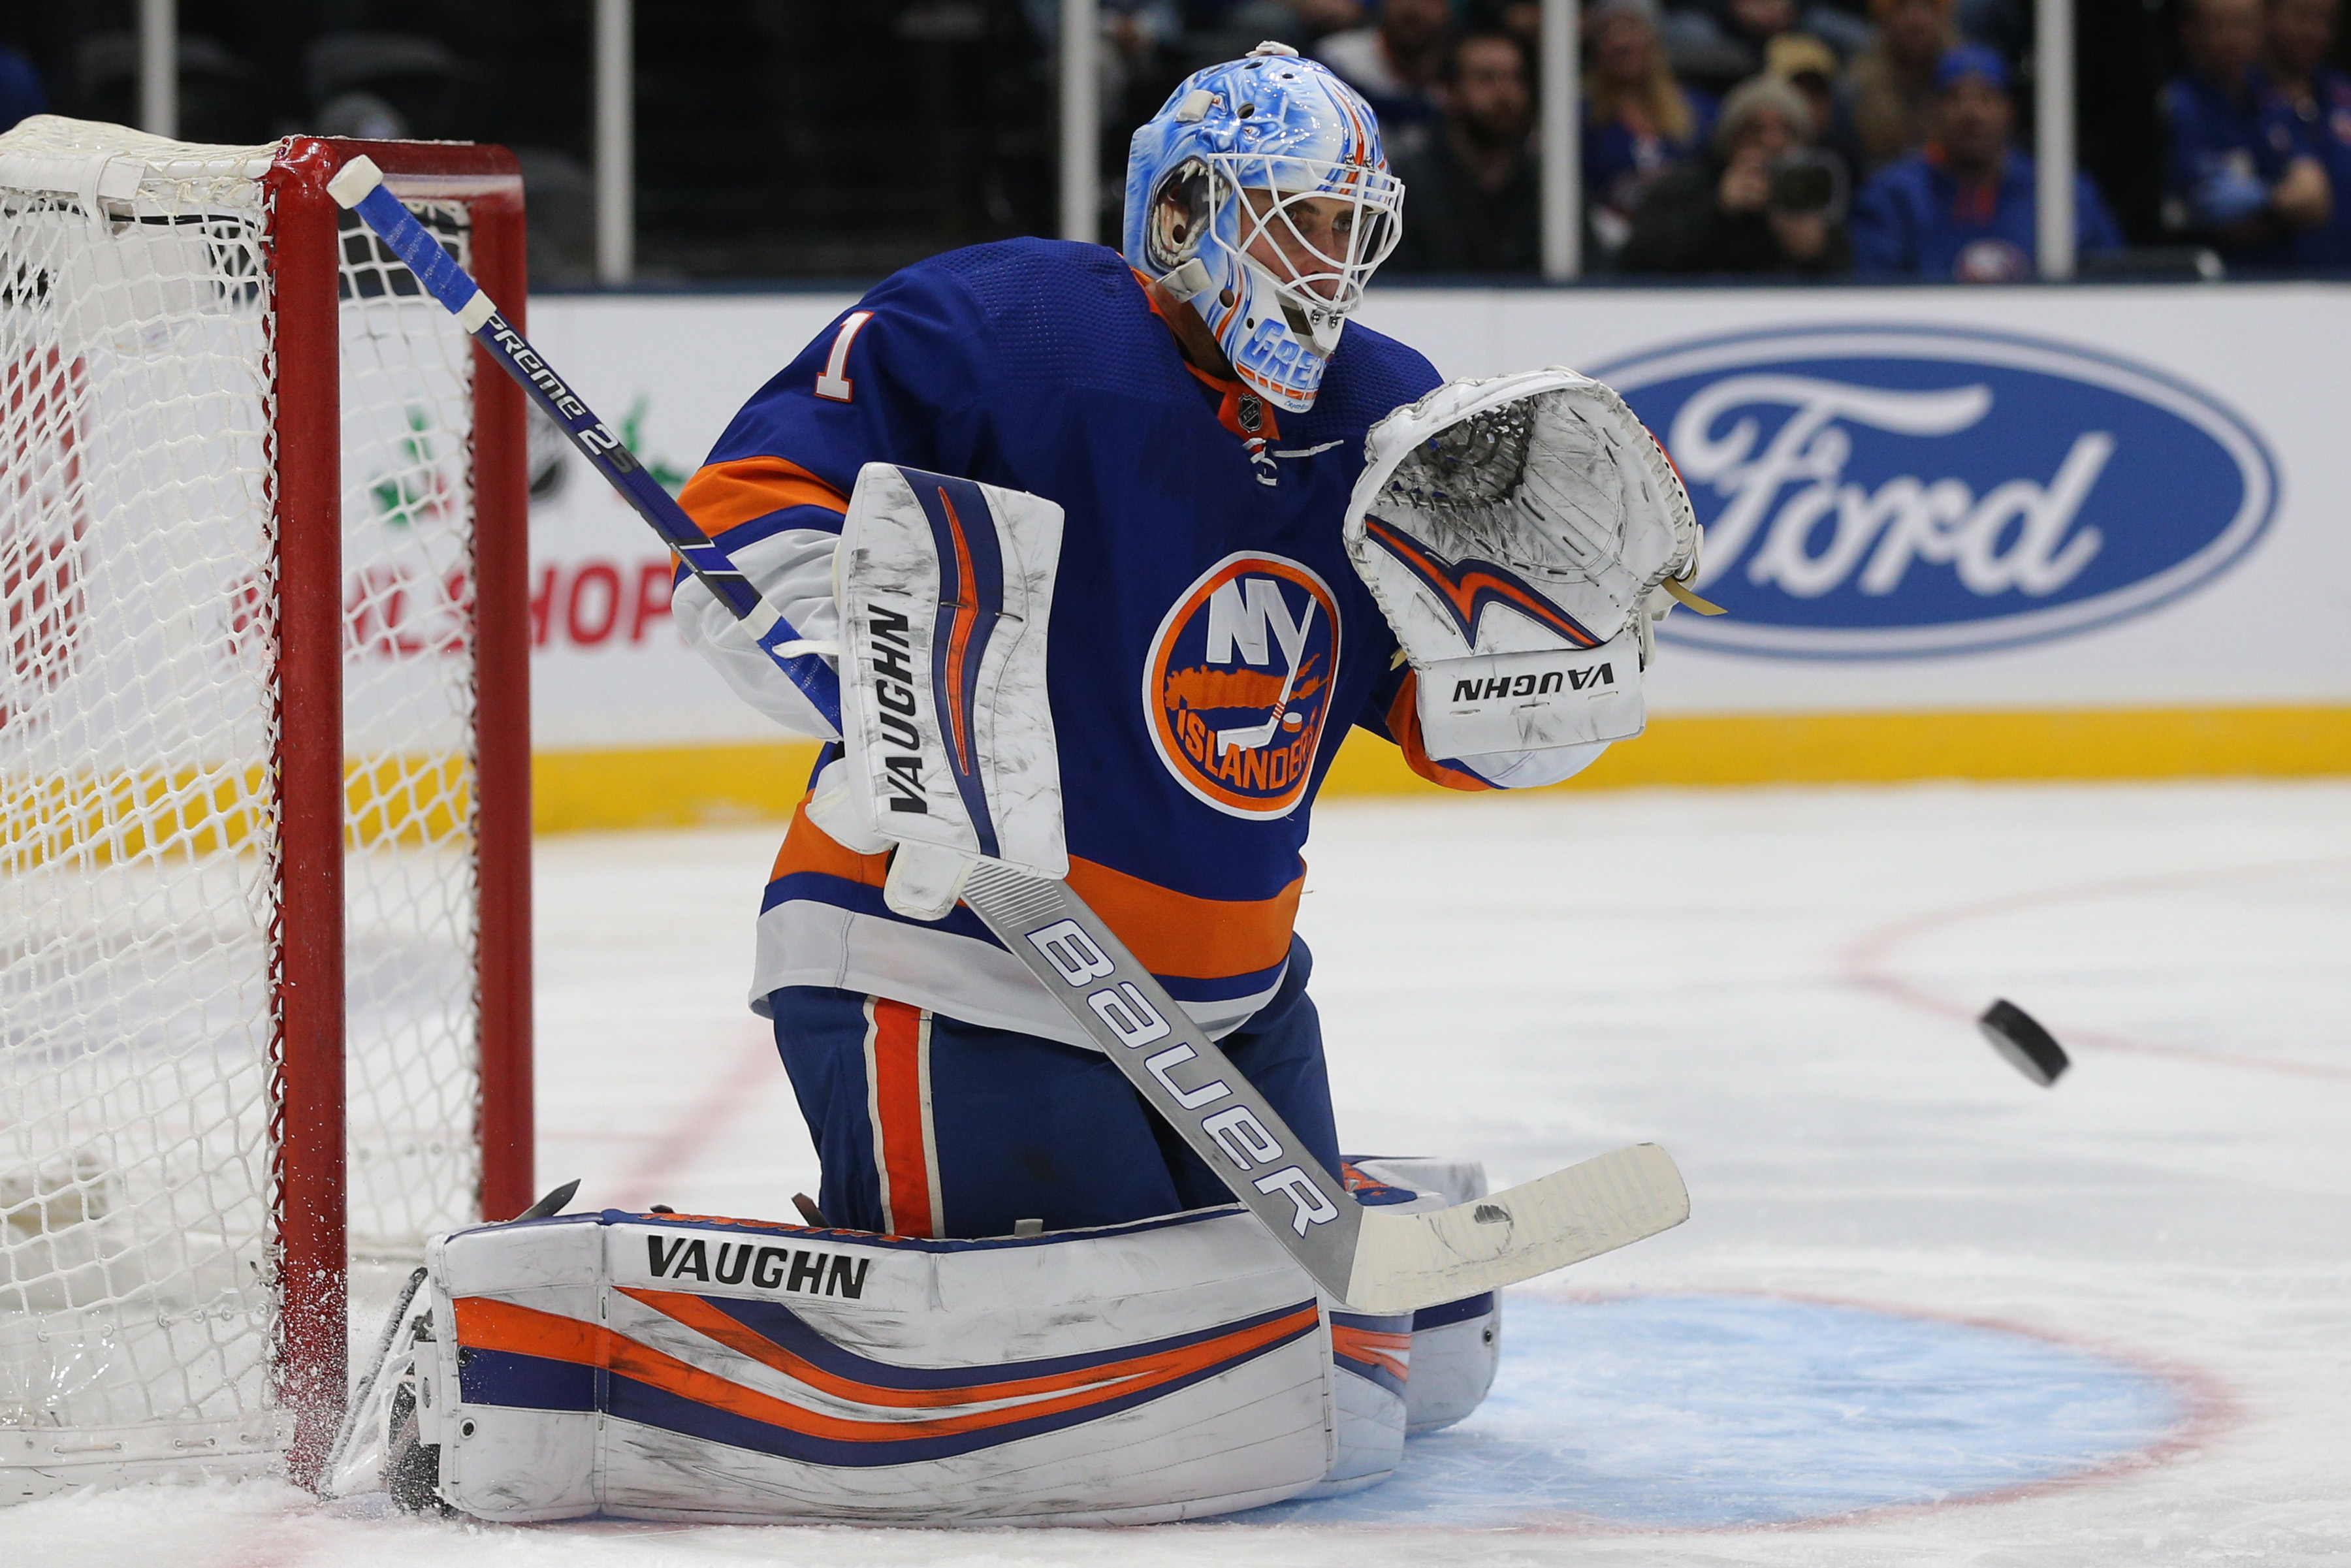 Dec 17, 2019; Uniondale, NY, USA; New York Islanders goalie Thomas Greiss (1) plays the puck against the Nashville Predators during the first period at Nassau Veterans Memorial Coliseum. Mandatory Credit: Brad Penner-USA TODAY Sports